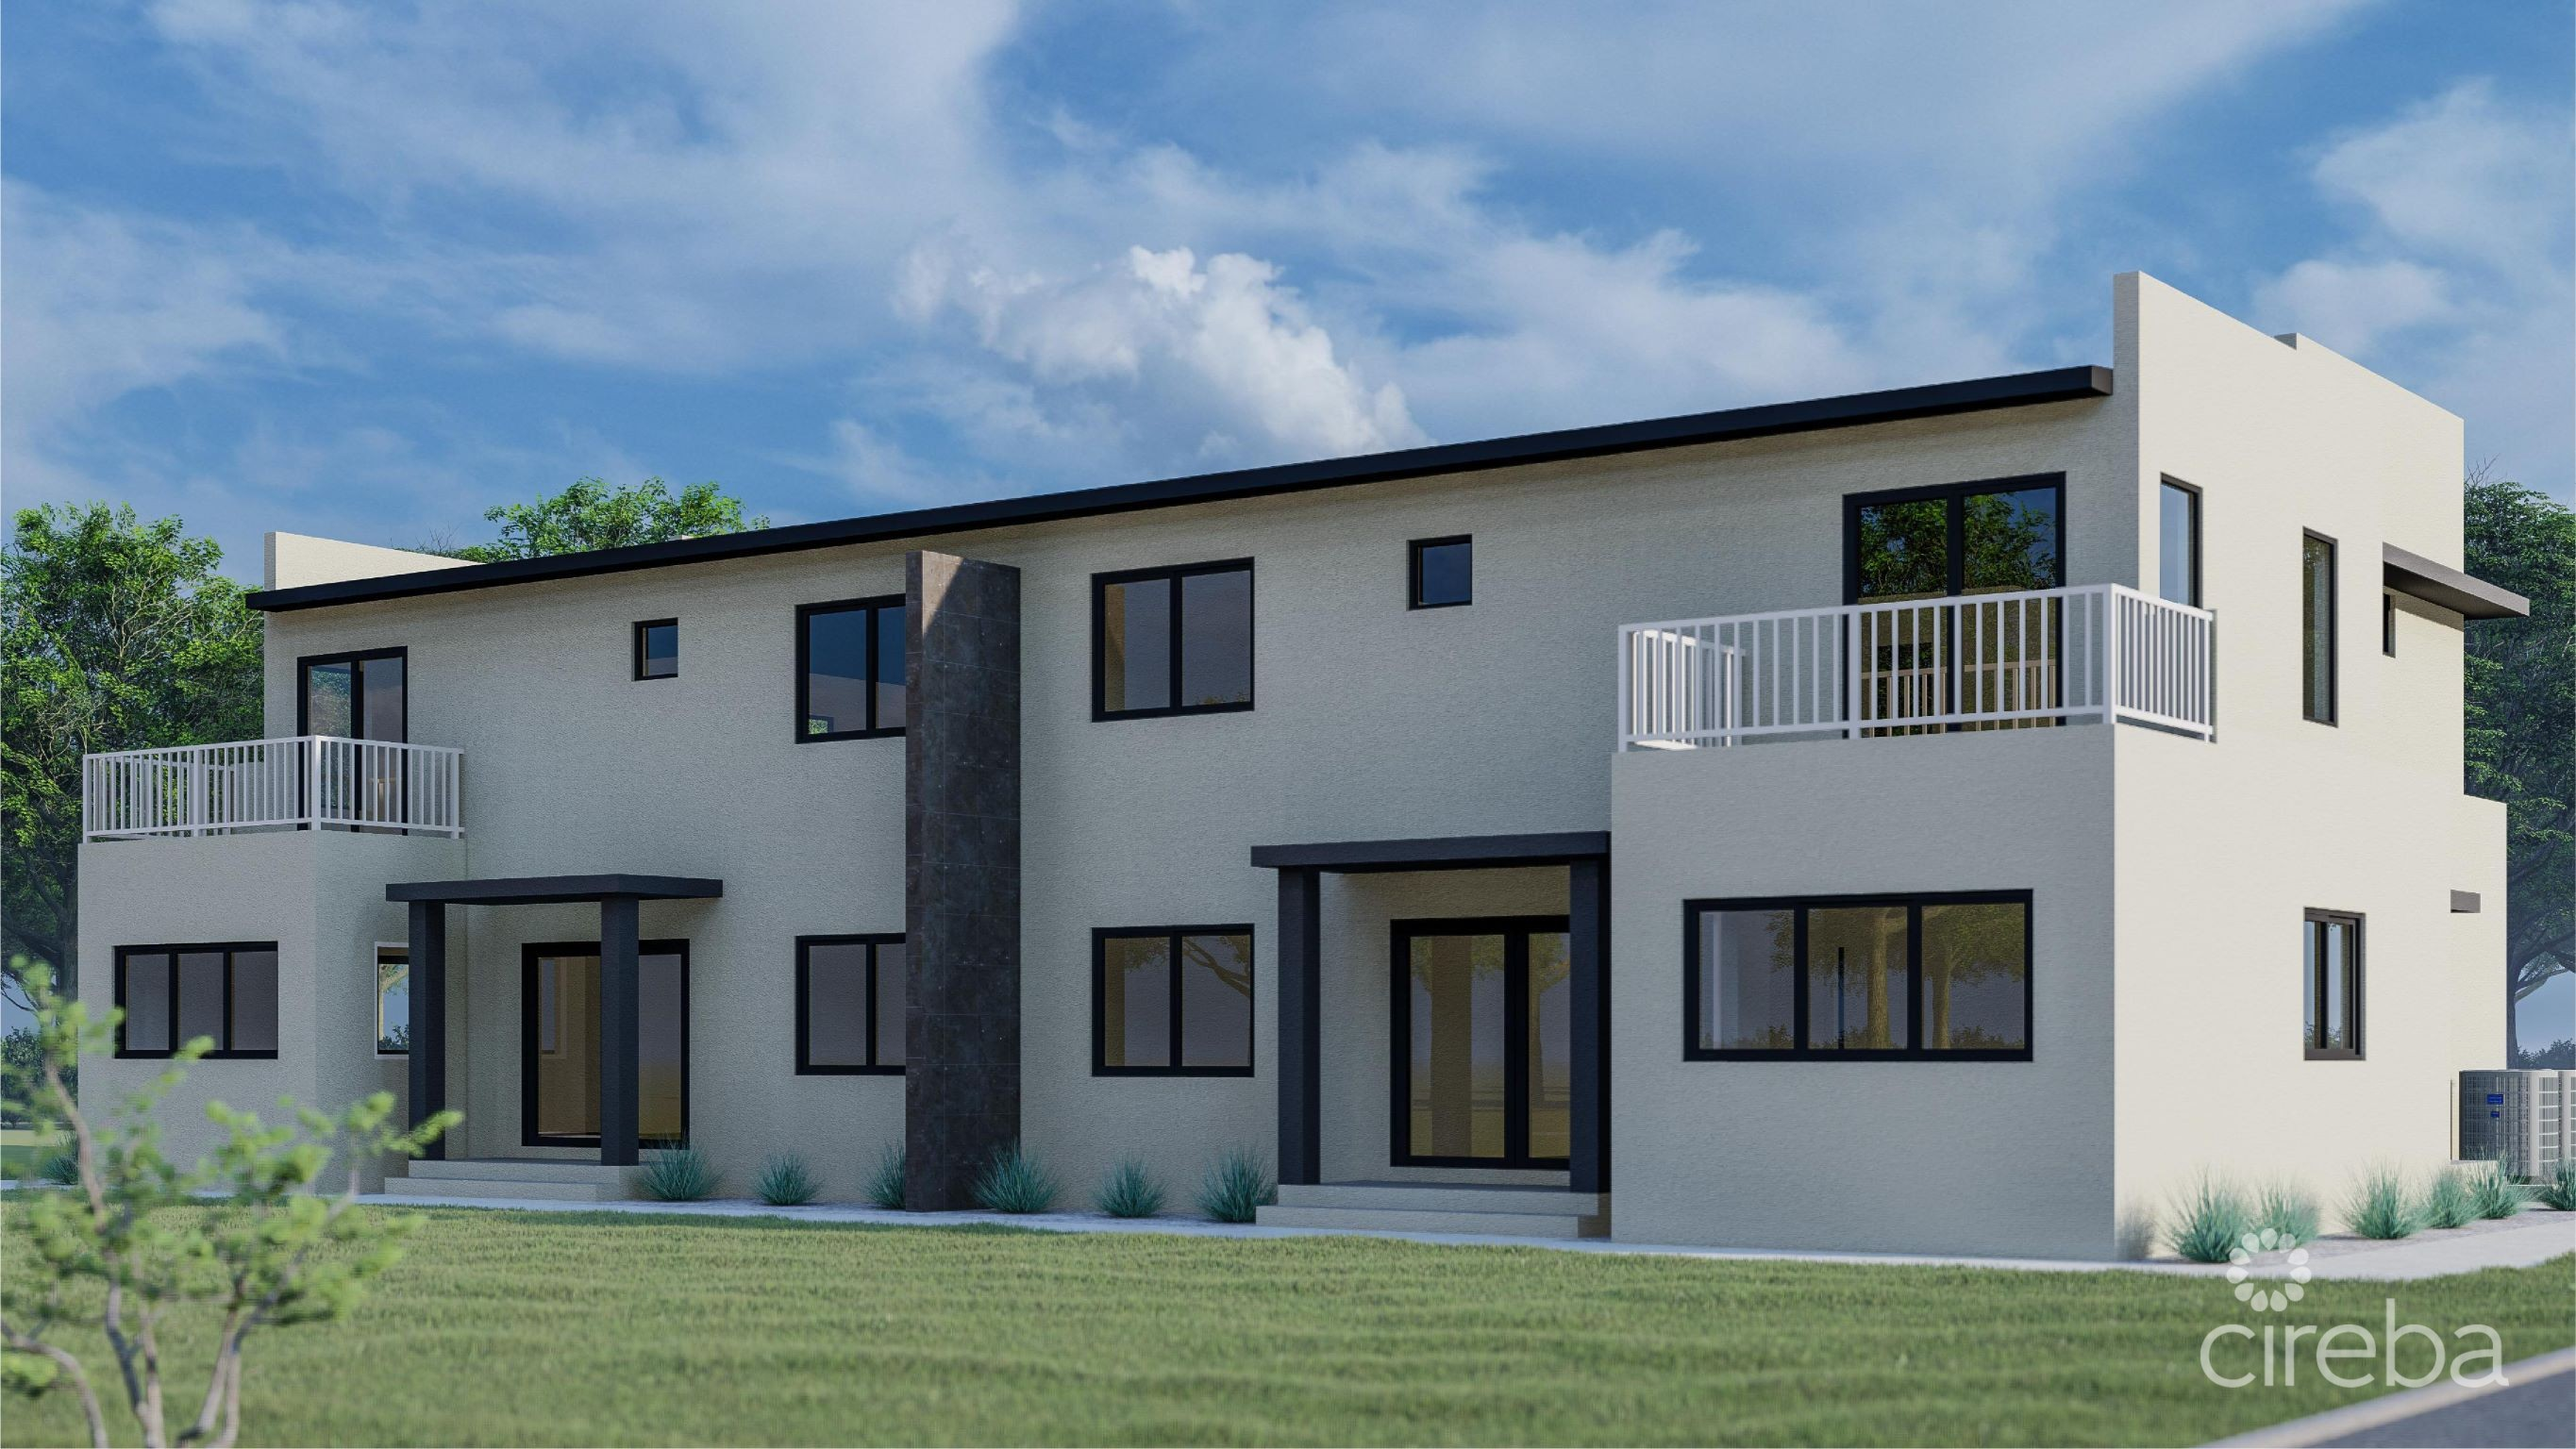 NEW CONSTRUCTION COMPLEX IN WEST BAY